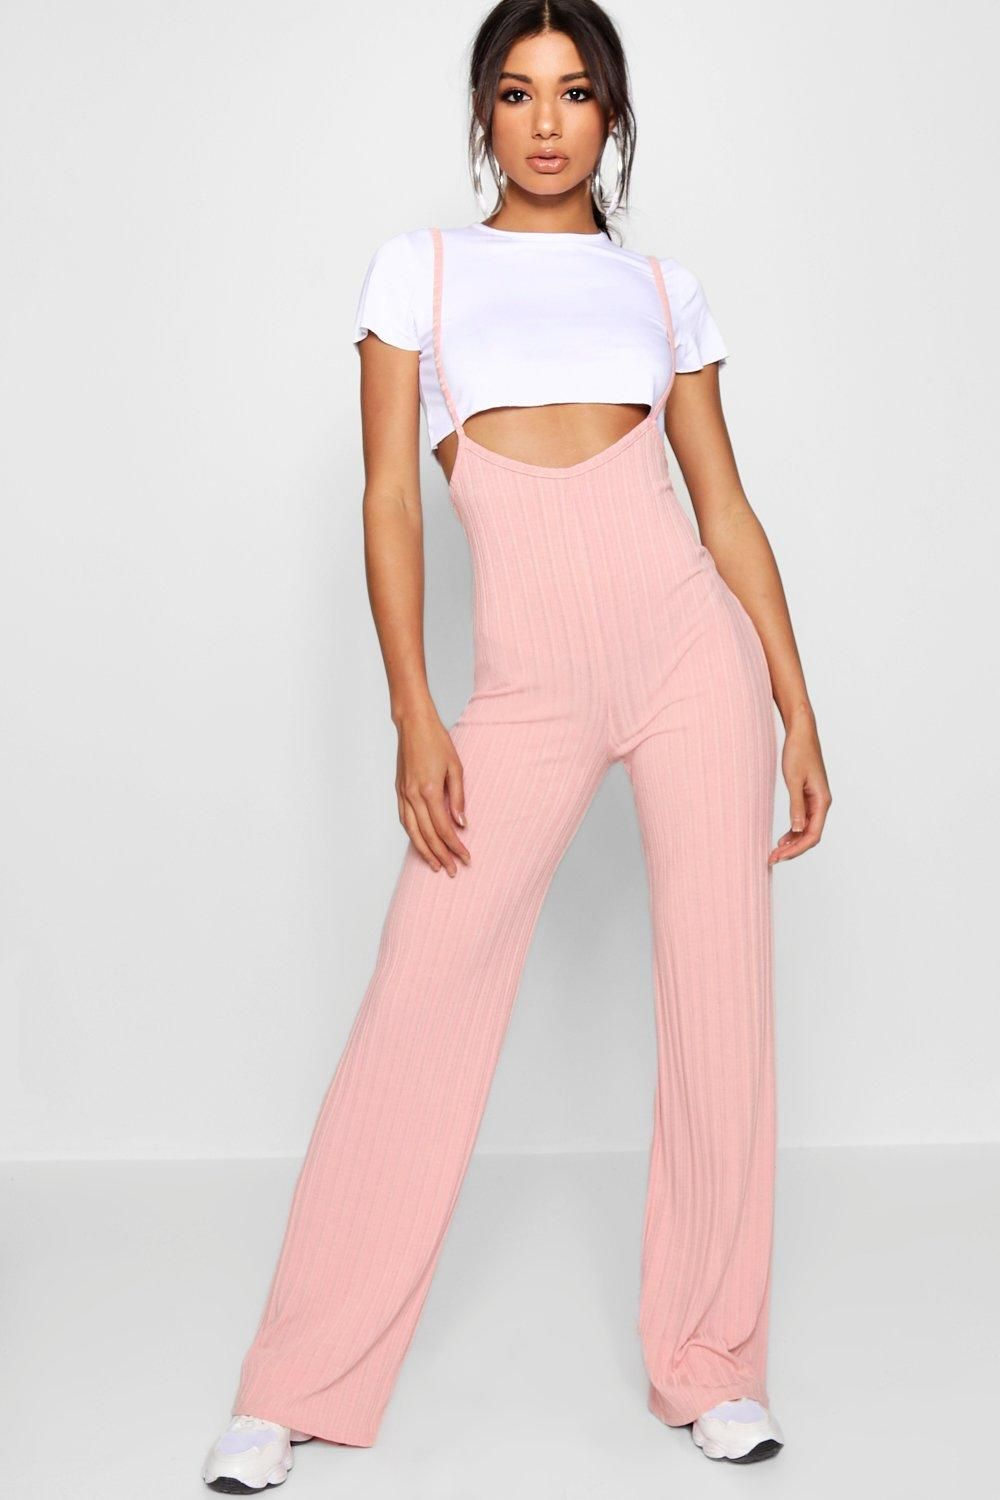 6752065bfd95 Click here to find out about the Crop T-Shirt Strappy Jumpsuit Co-ord Set  from Boohoo $20